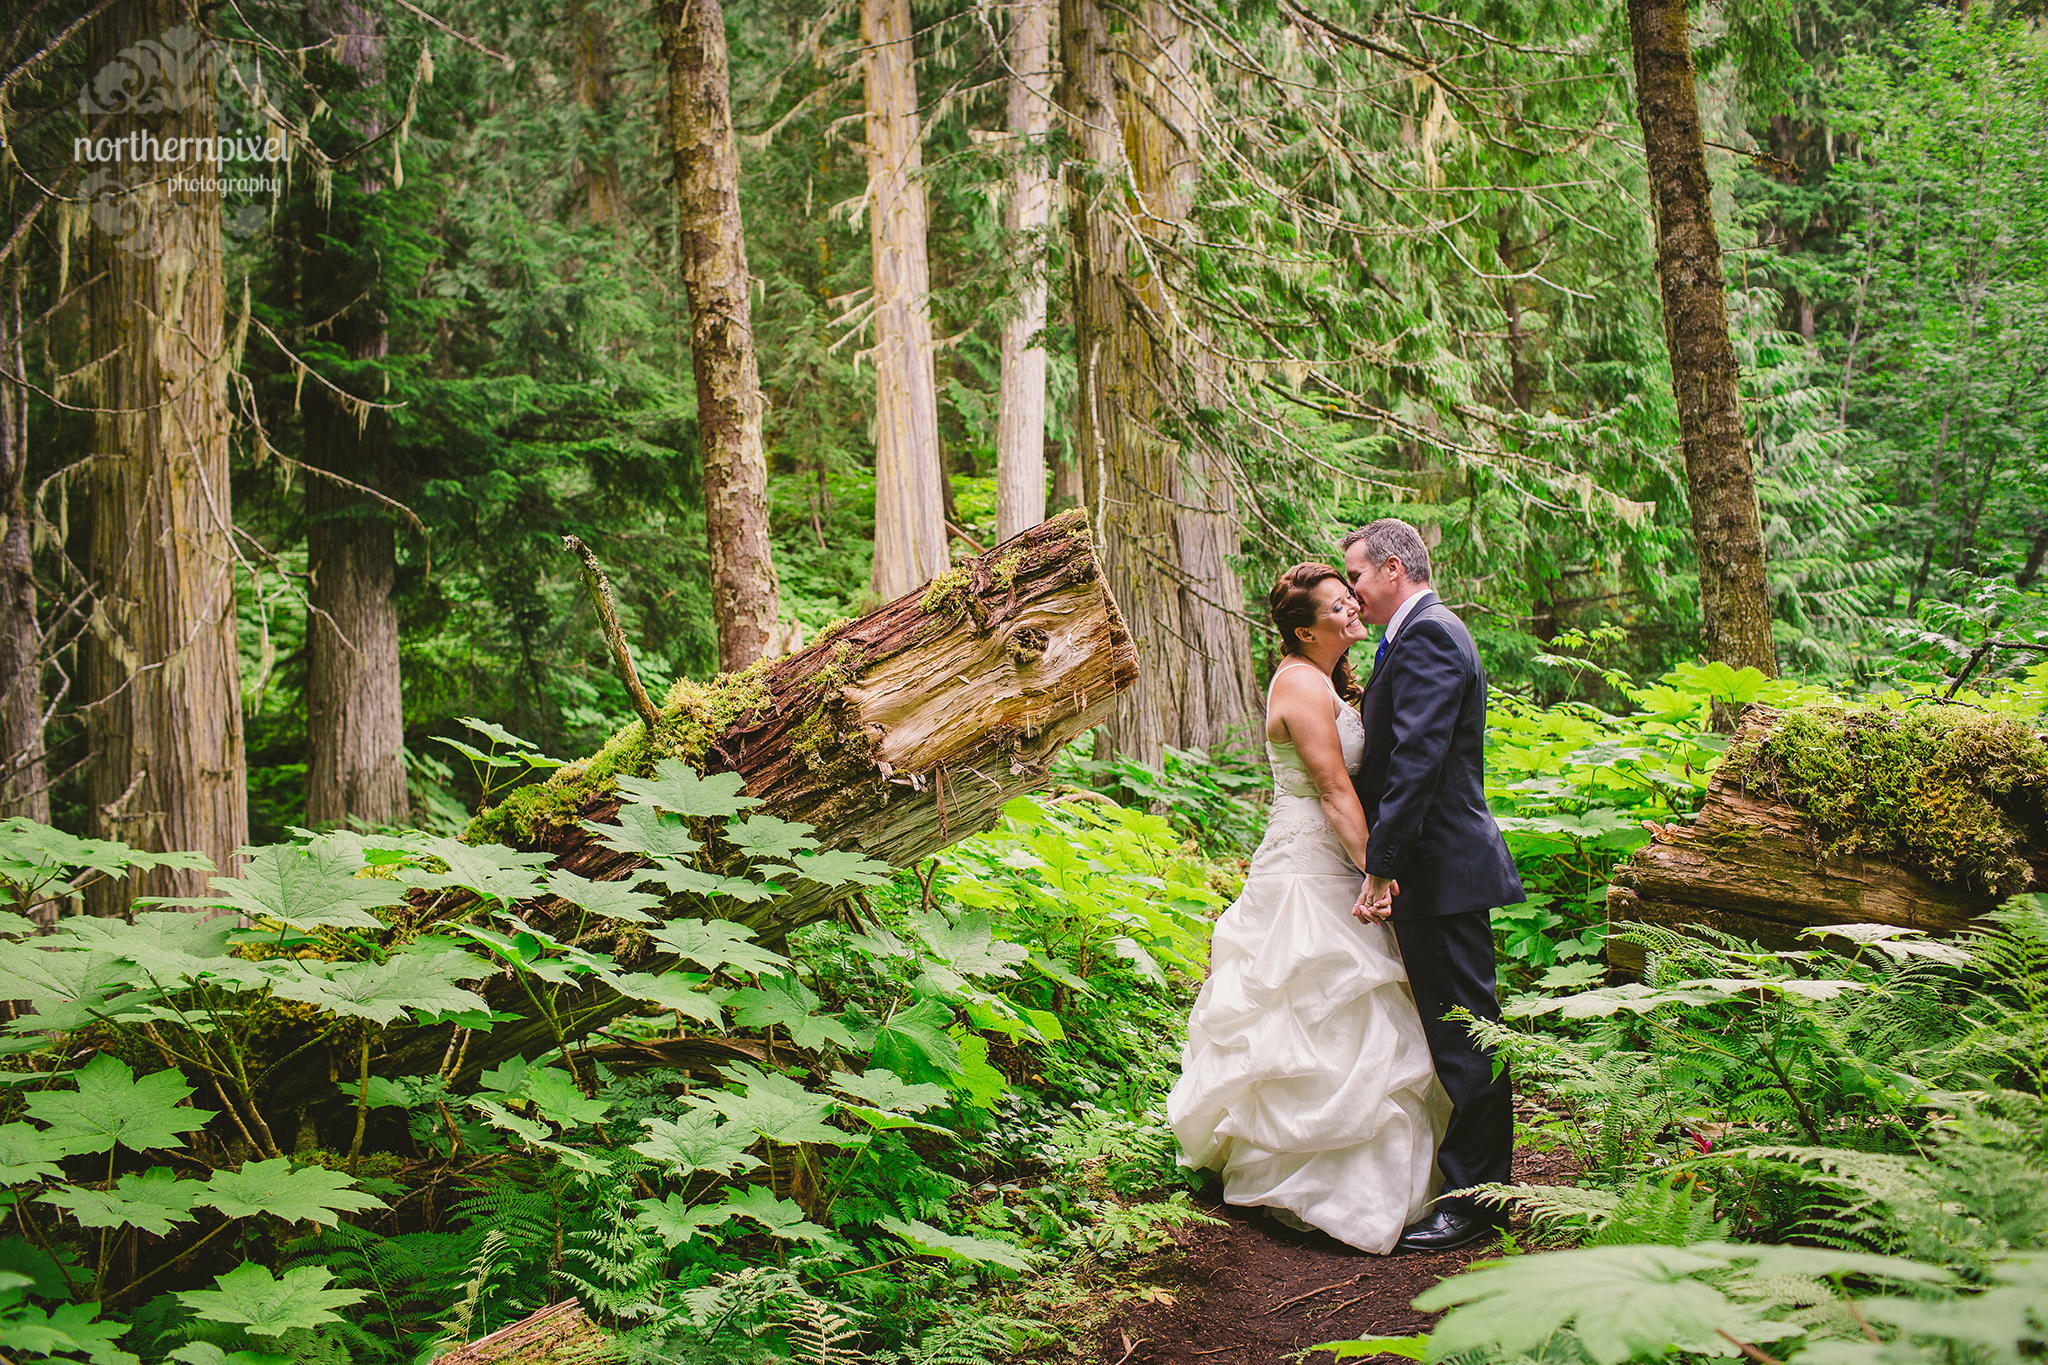 Wedding Photography at the Ancient Forest Prince George BC Wedding